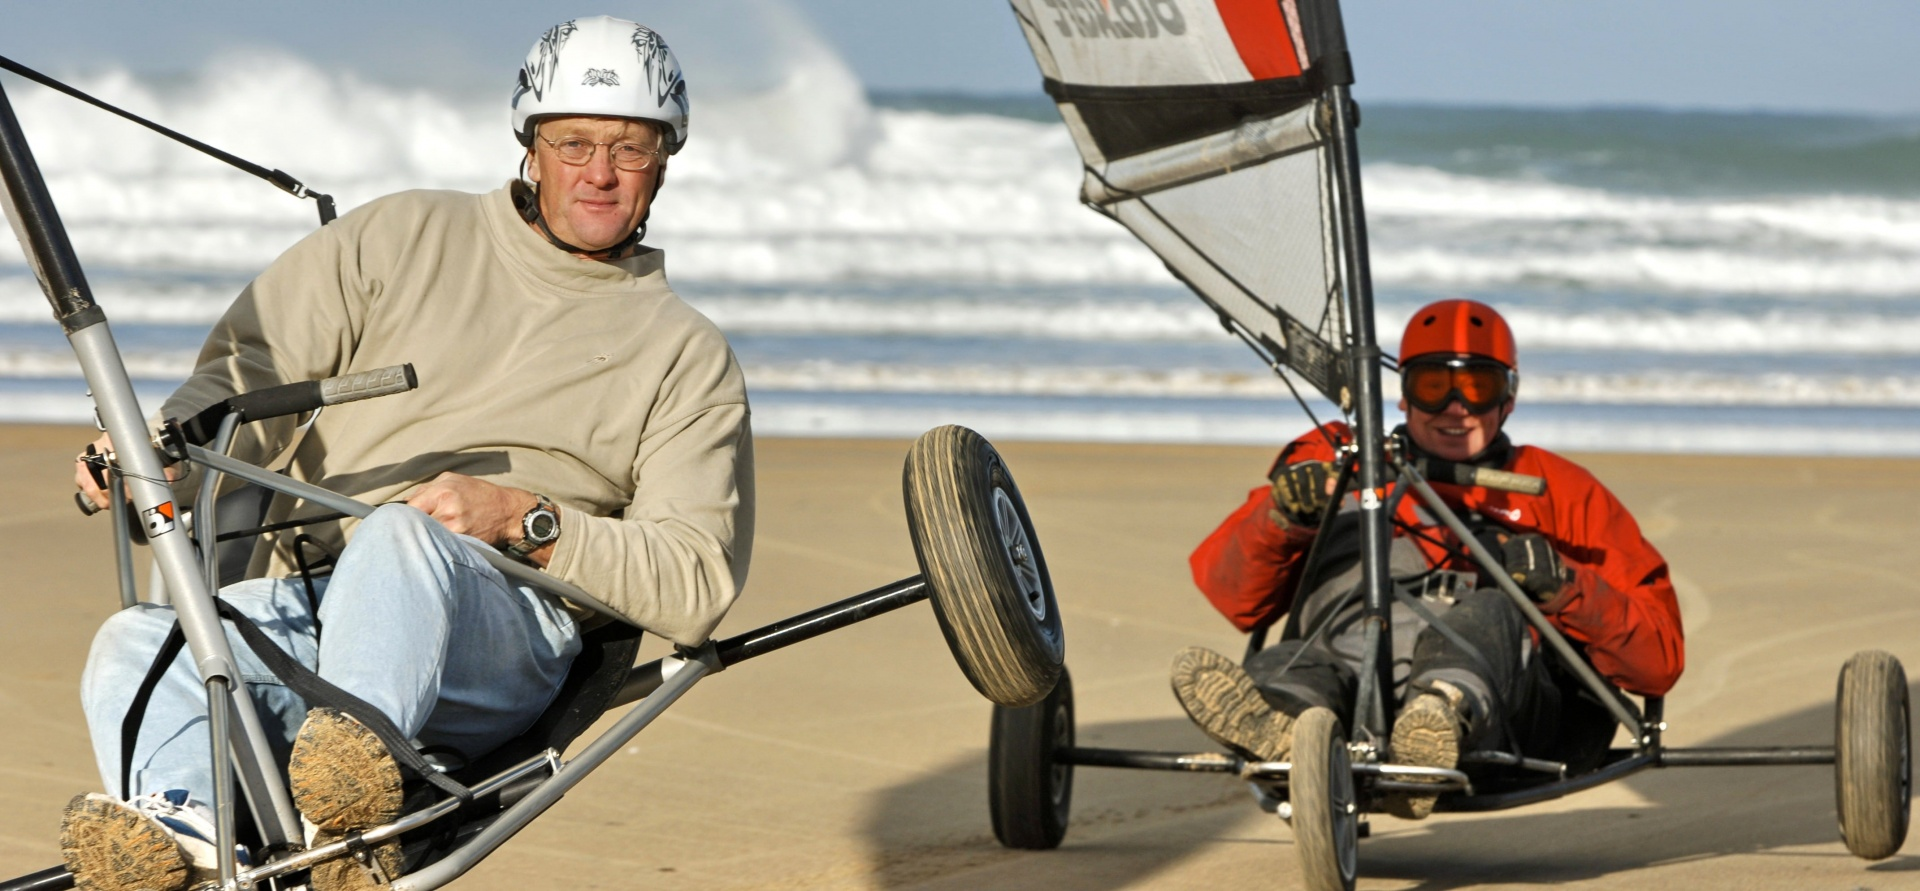 Blokart Experience In Cornwall For Two-2